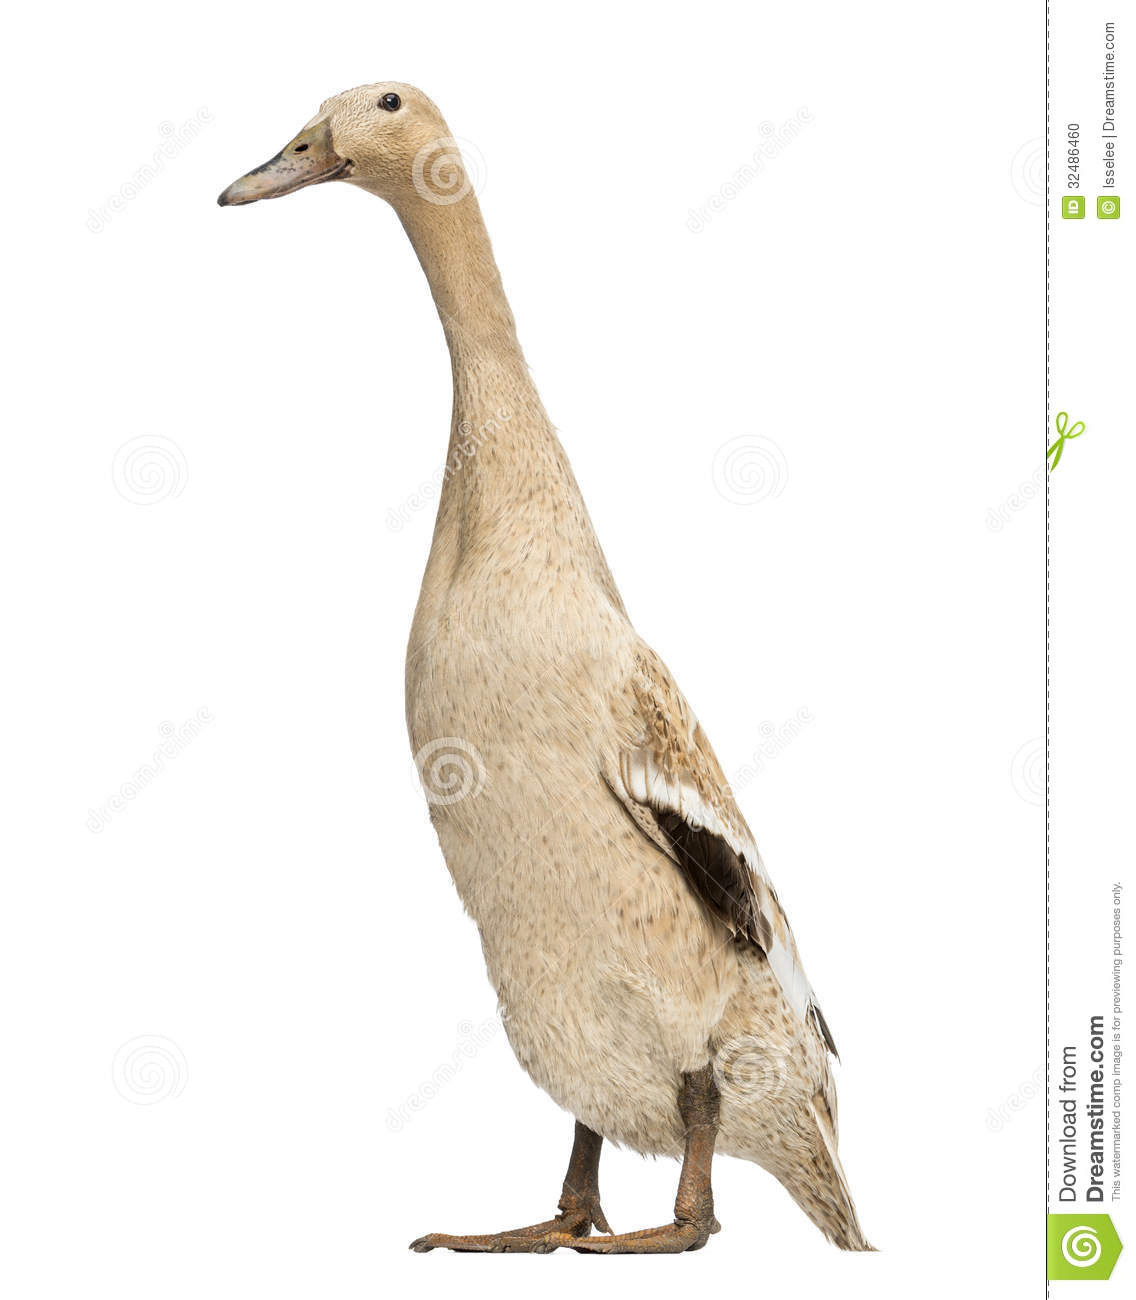 Female Indian Runner Duck, Anas Platyrhynchos Domesticus, Standing.